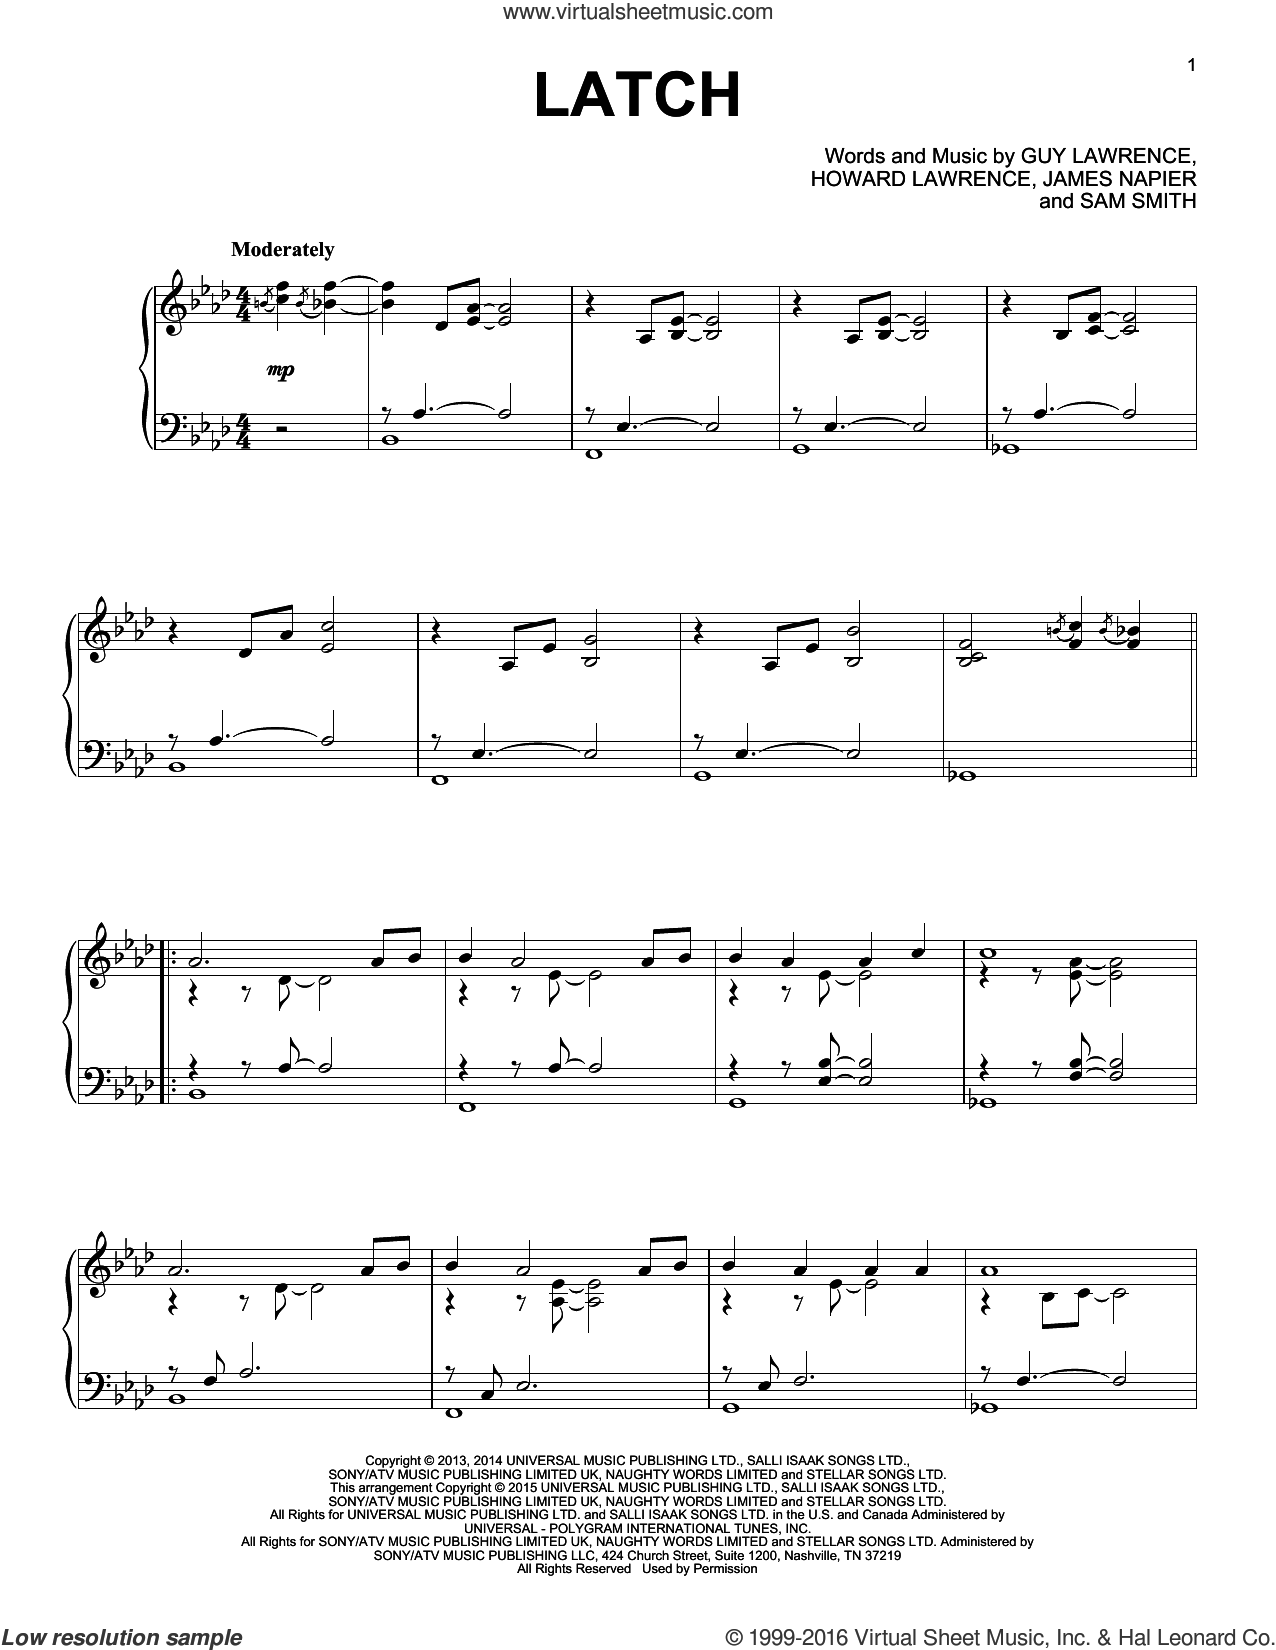 Latch sheet music for piano solo by Disclosure feat. Sam Smith, Guy Lawrence, Howard Lawrence, James Napier and Sam Smith, wedding score, intermediate skill level